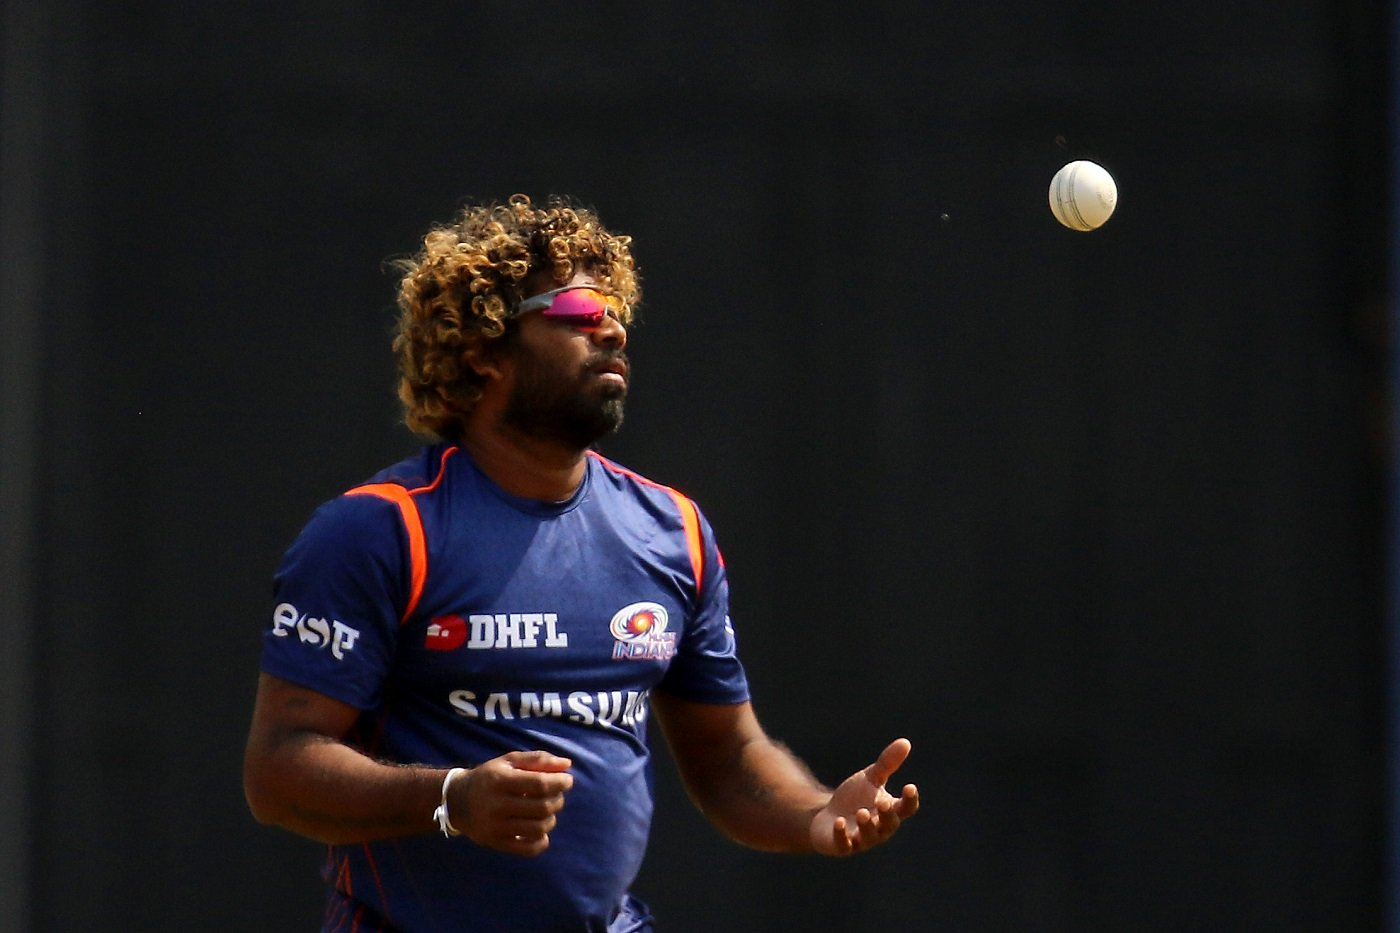 Lasith Malinga likely to miss the First half of IPL 2020